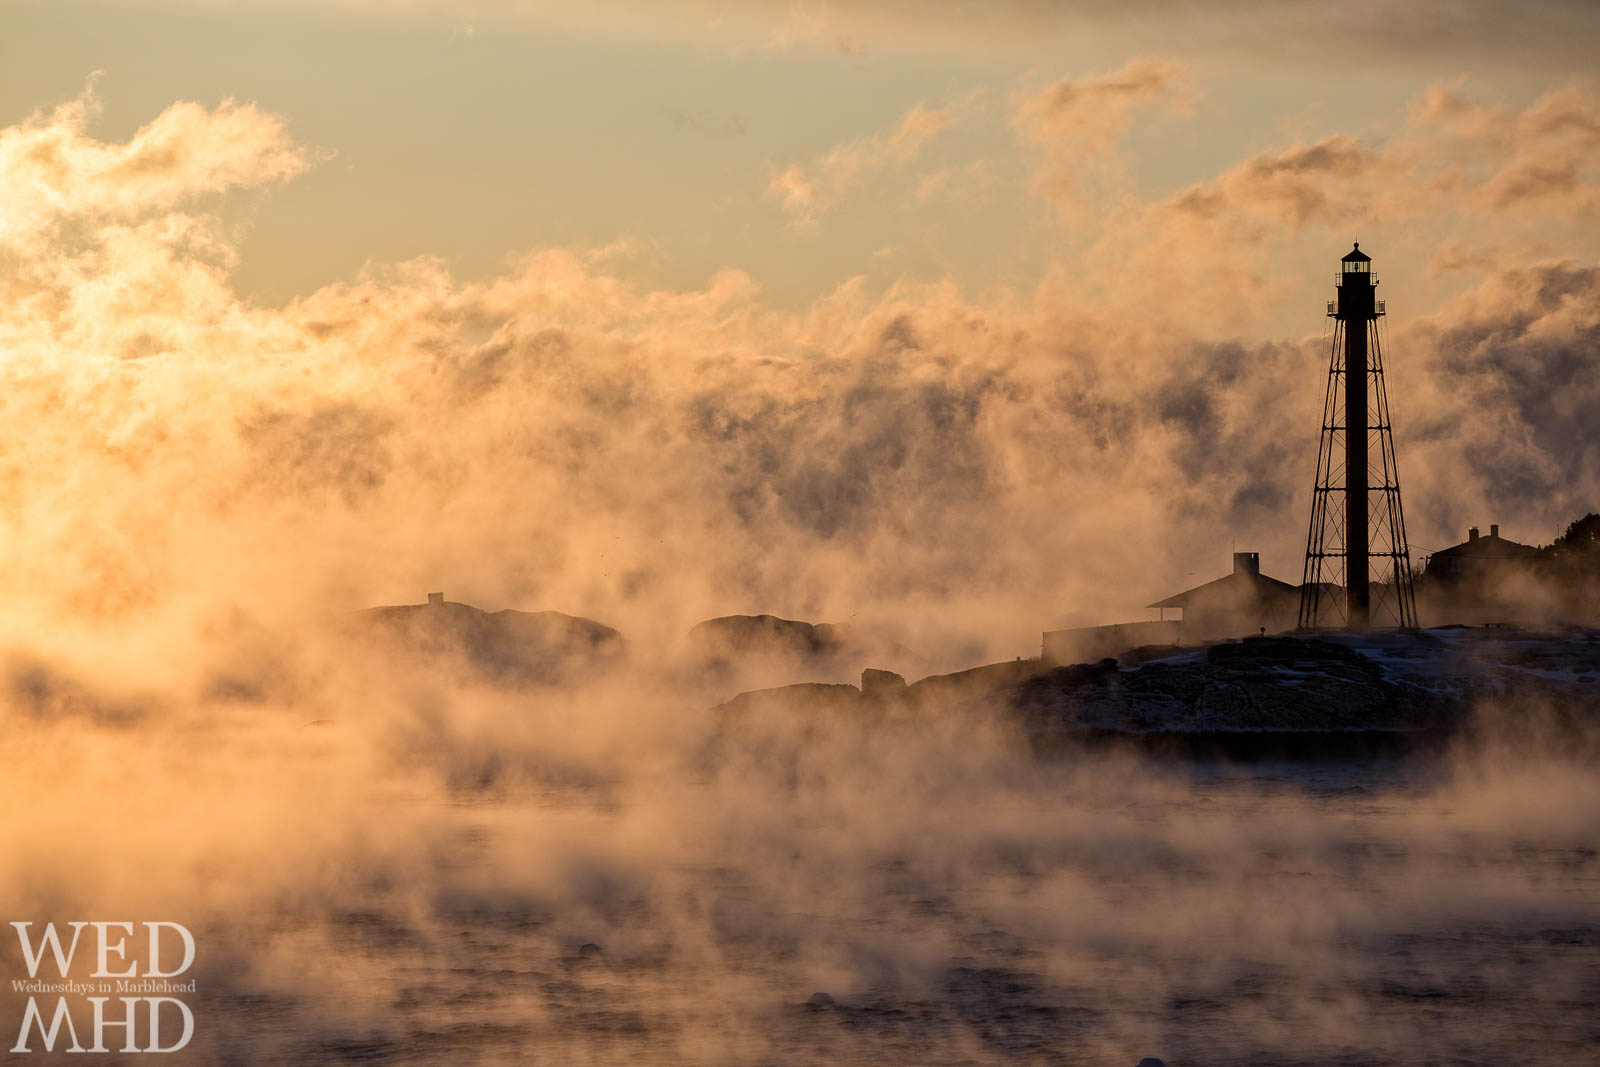 Pillars of sea smoke rise from Marblehead Harbor as arctic air causes steam to form from ocean water